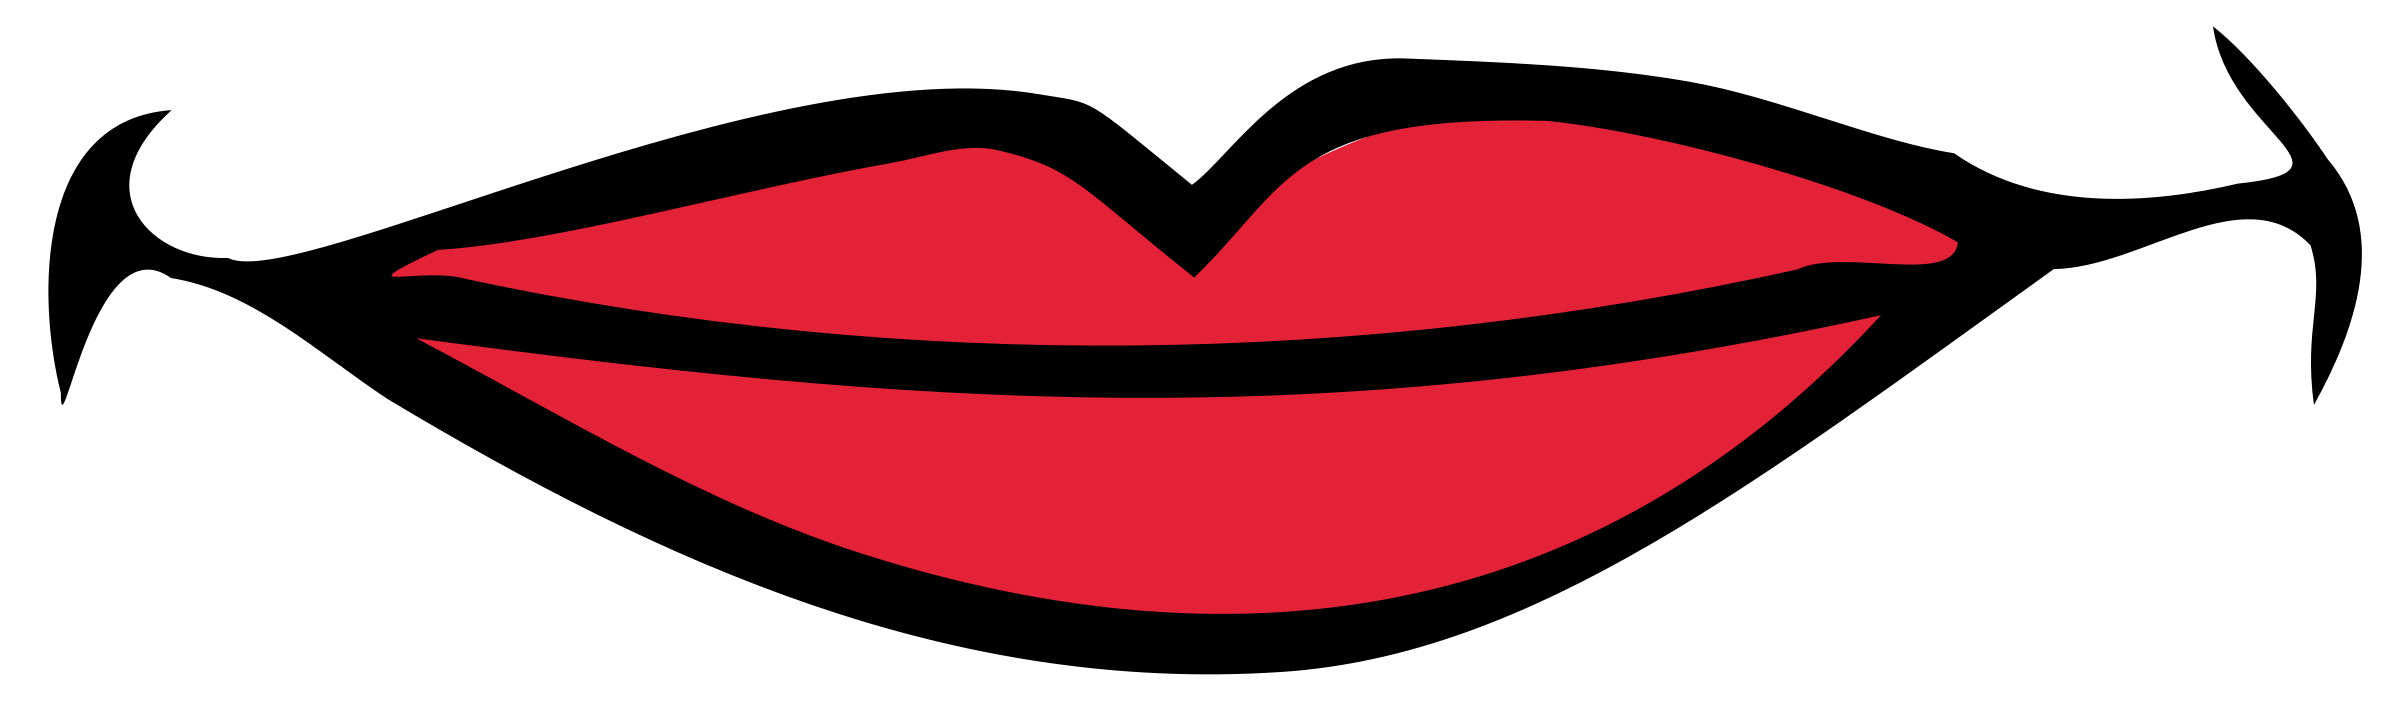 Pin Lips Clipart Mouth Smile #3 - Smile Lips, Transparent background PNG HD thumbnail